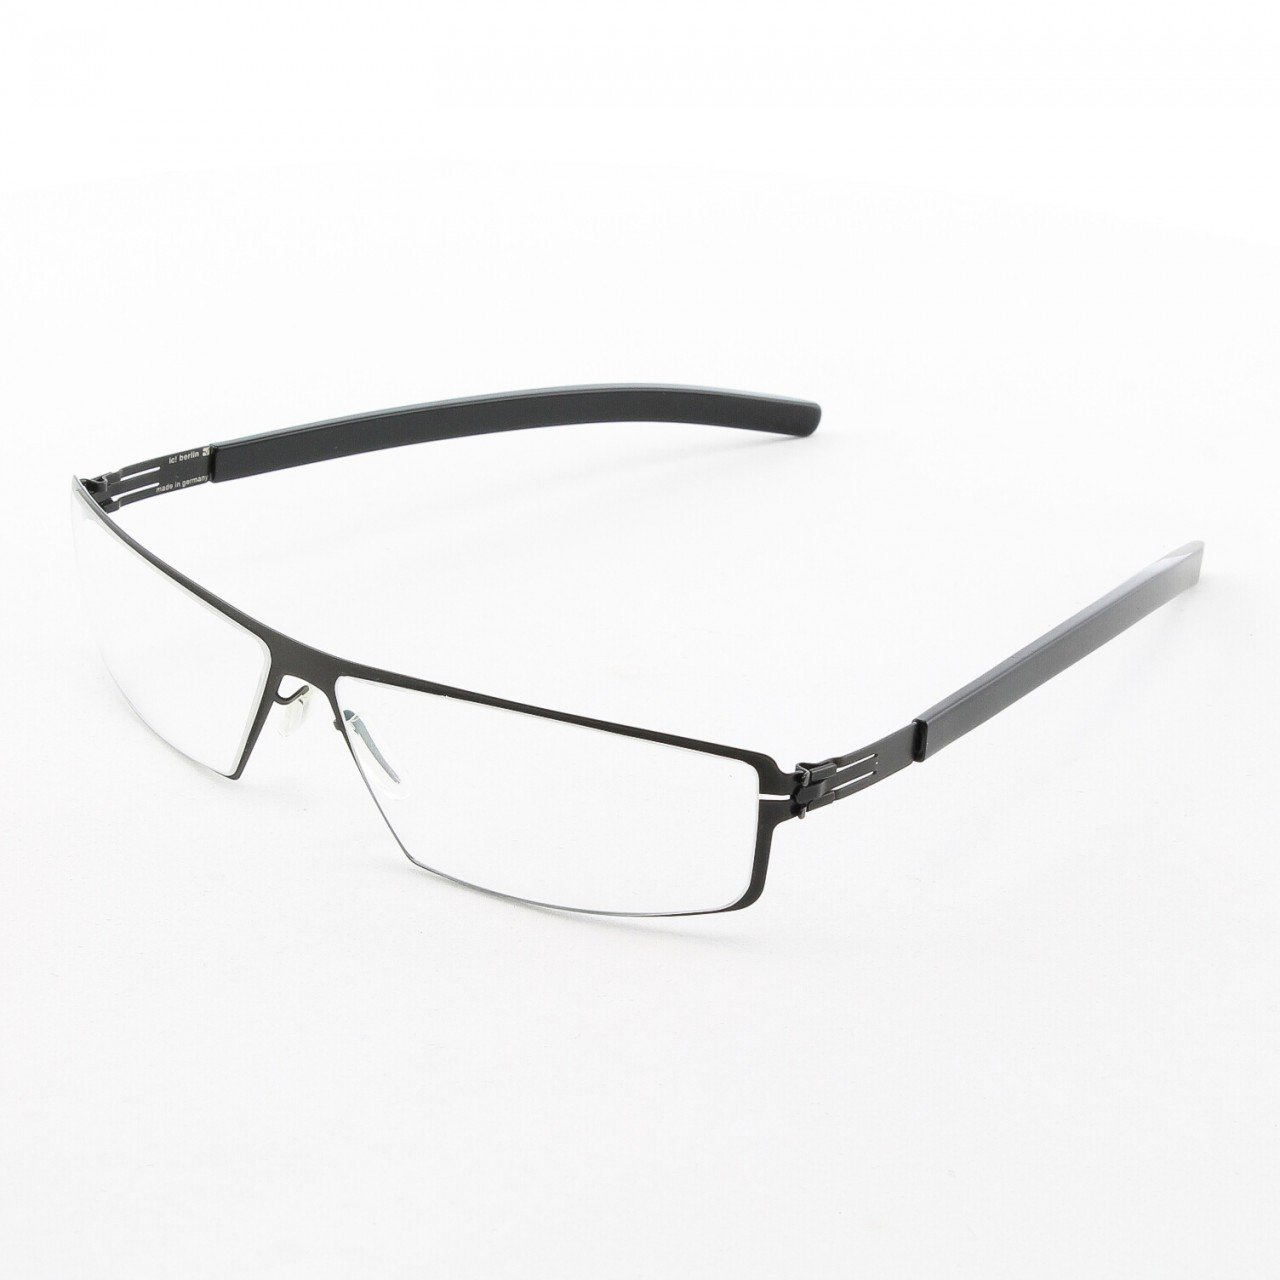 ic! Berlin Hornberg Eyeglasses Col. Black with Clear Lenses